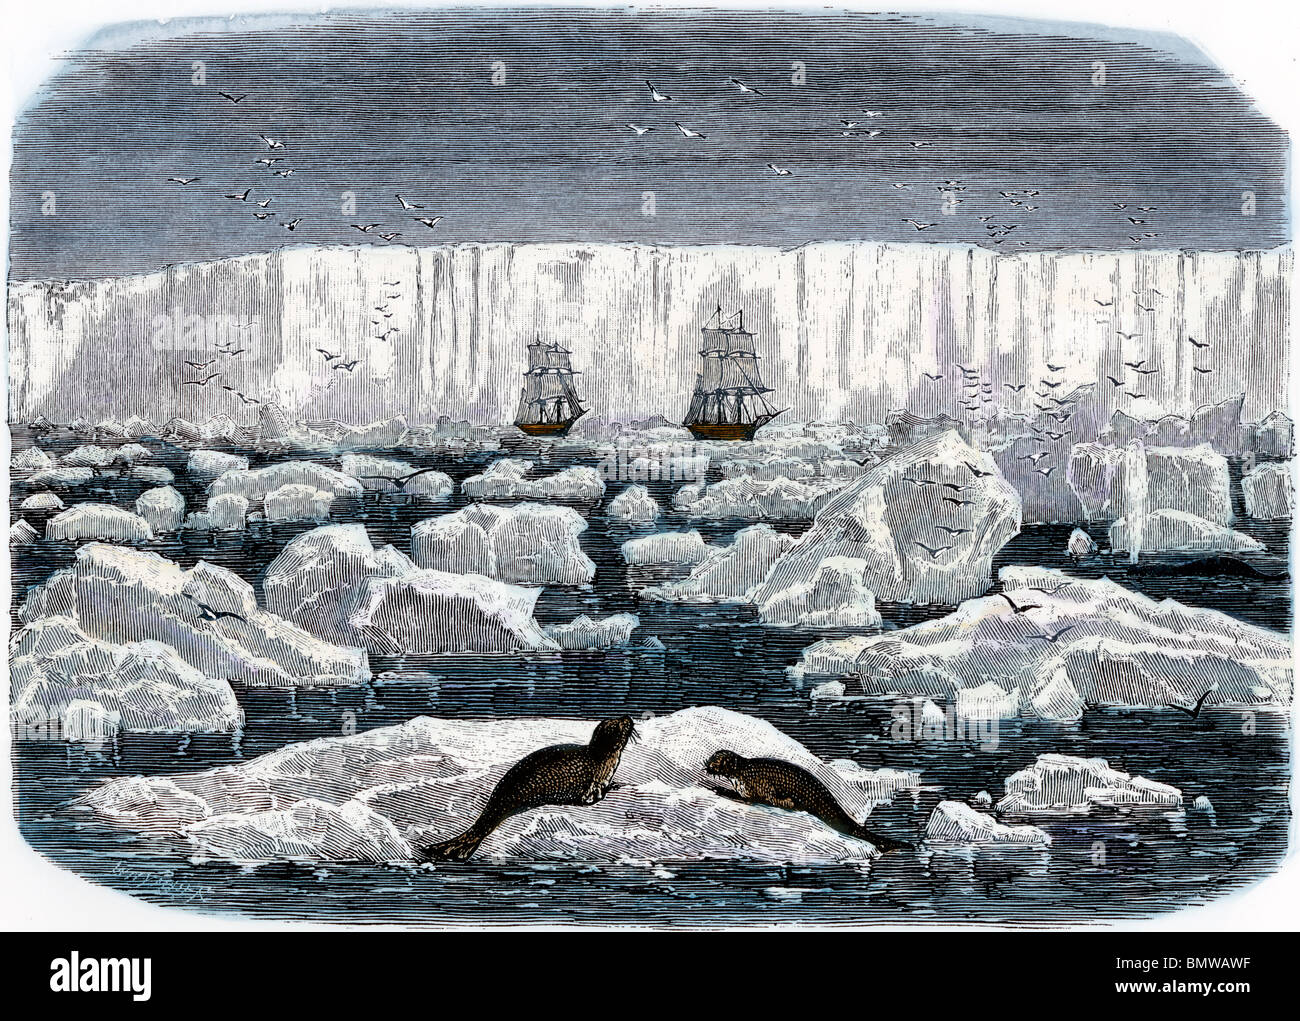 Whalers in action wood engraving published in 1855 stock illustration - Two Sailing Ships Near The Ice Shelf Of Antarctica 1800s Stock Image